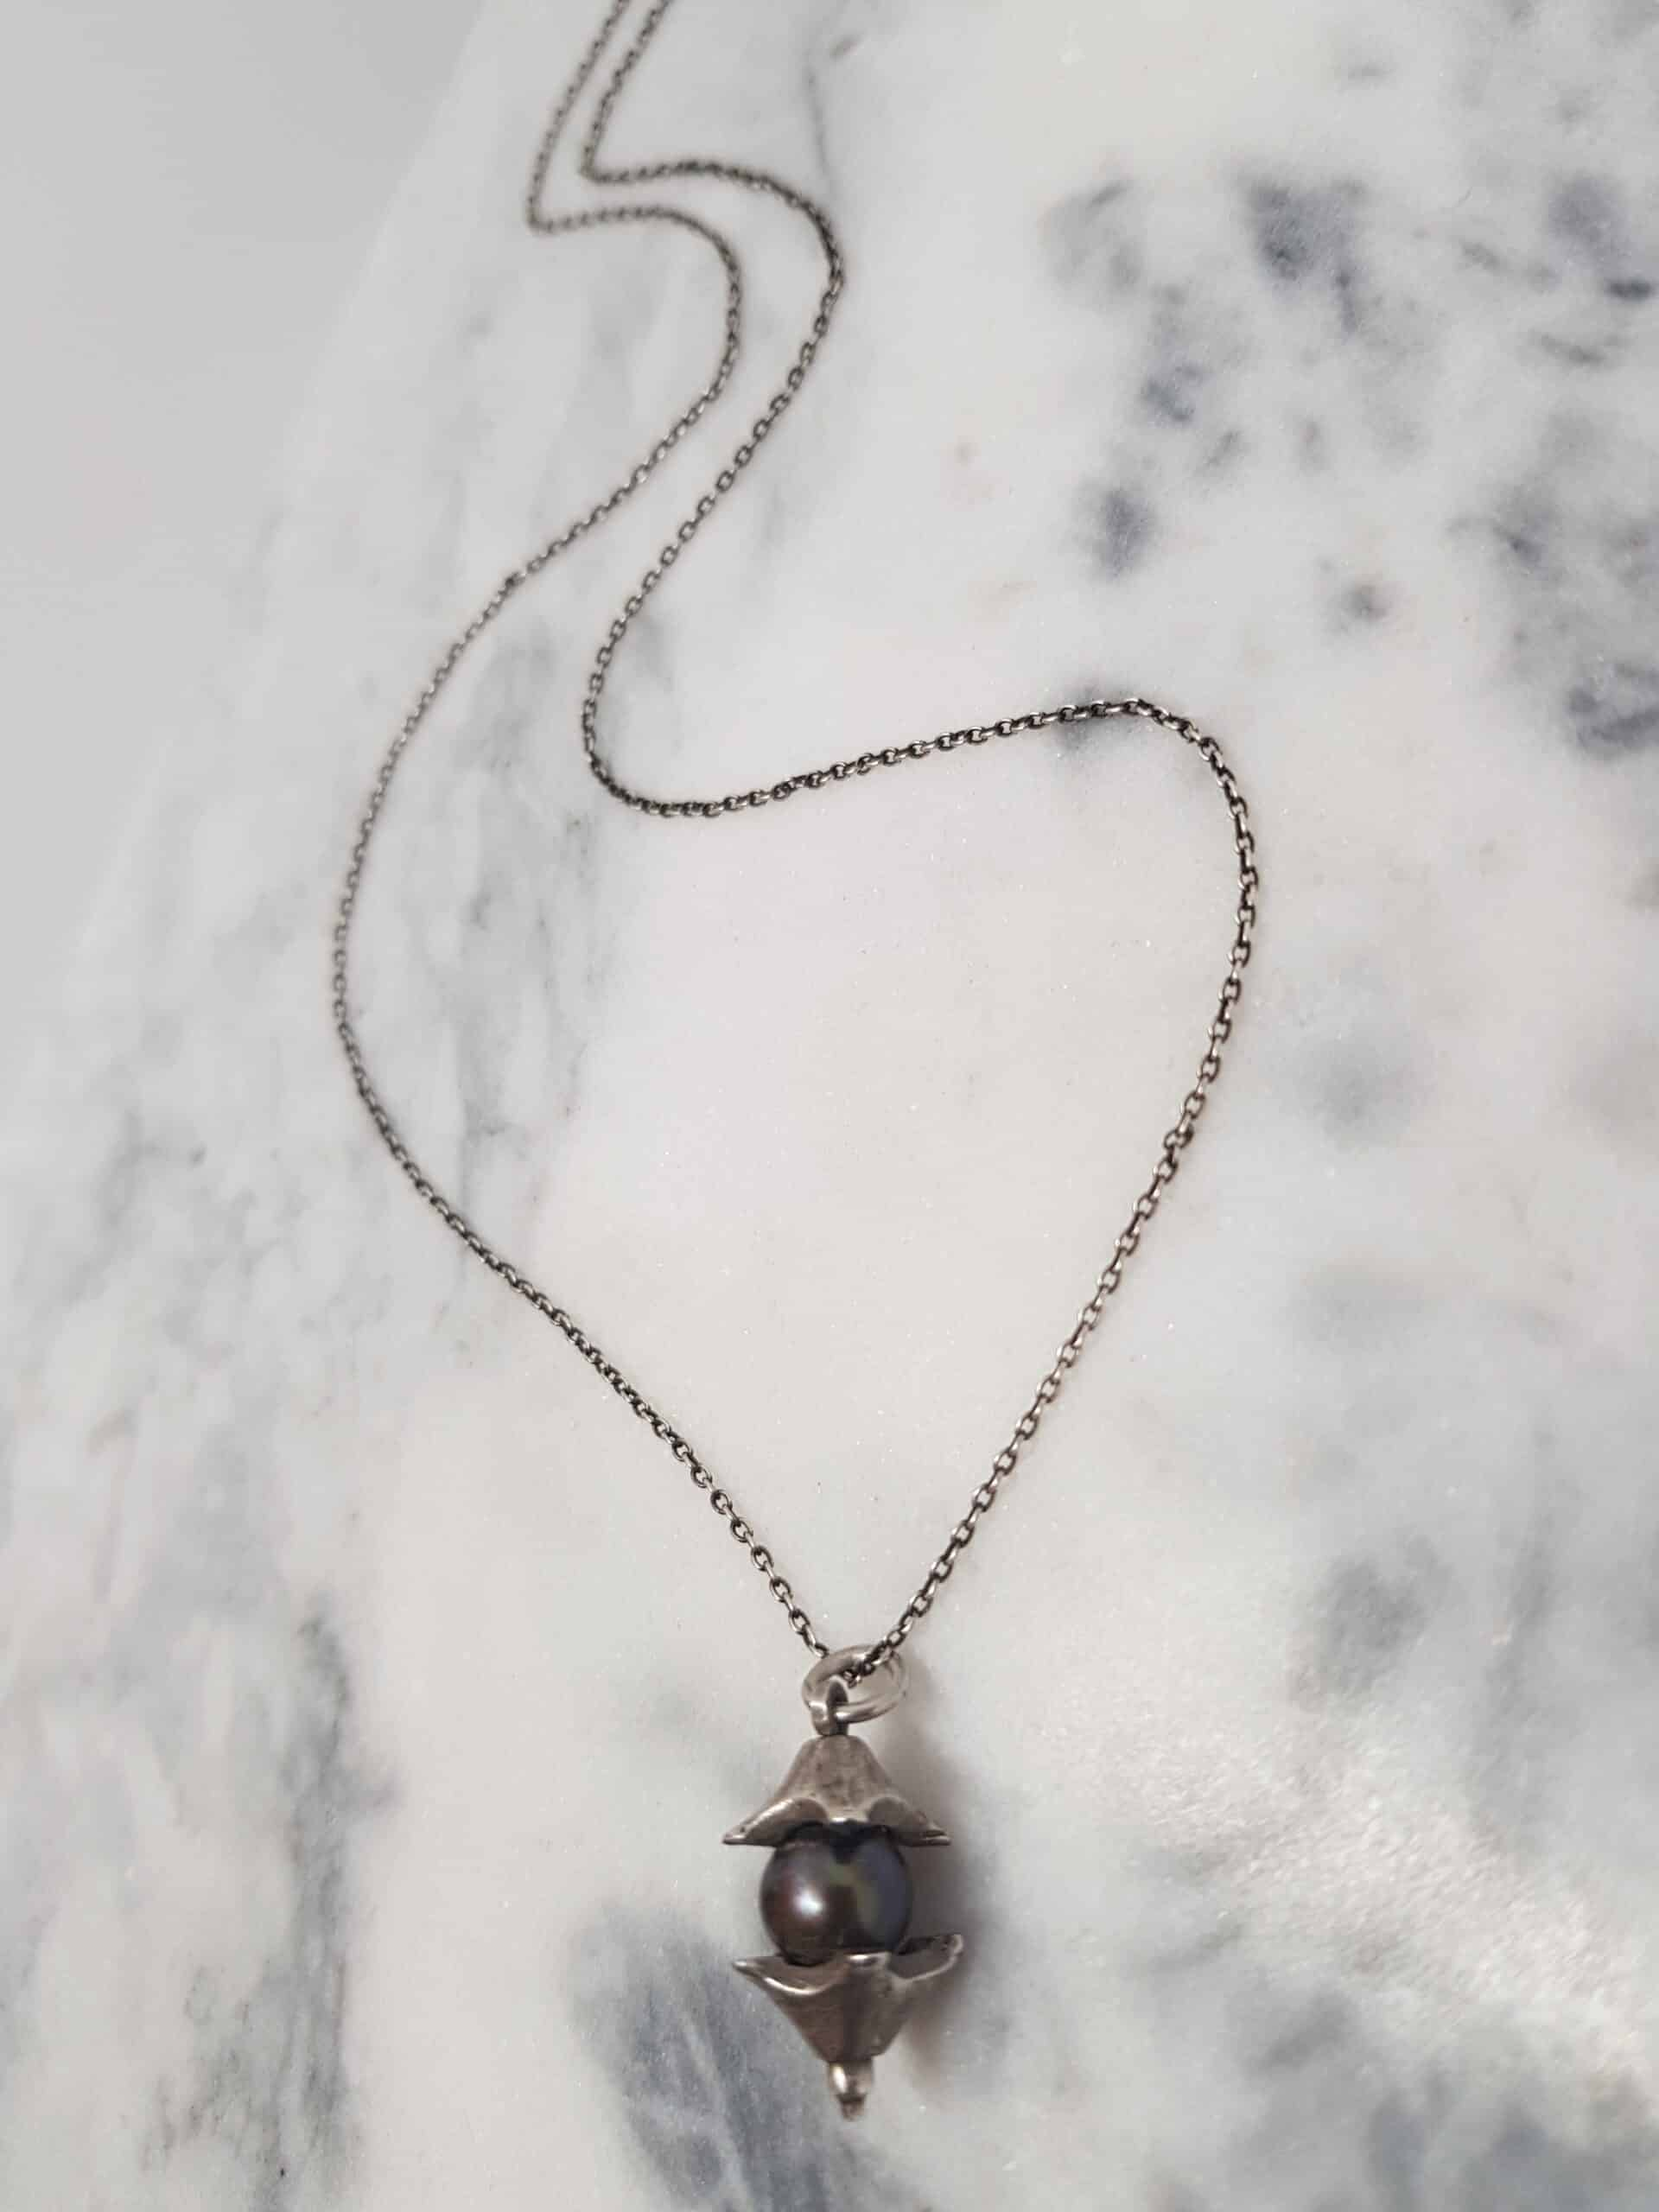 Handmade Silver Split Bead Pendant With Fresh Water Black Pearl By Corinne Lomon